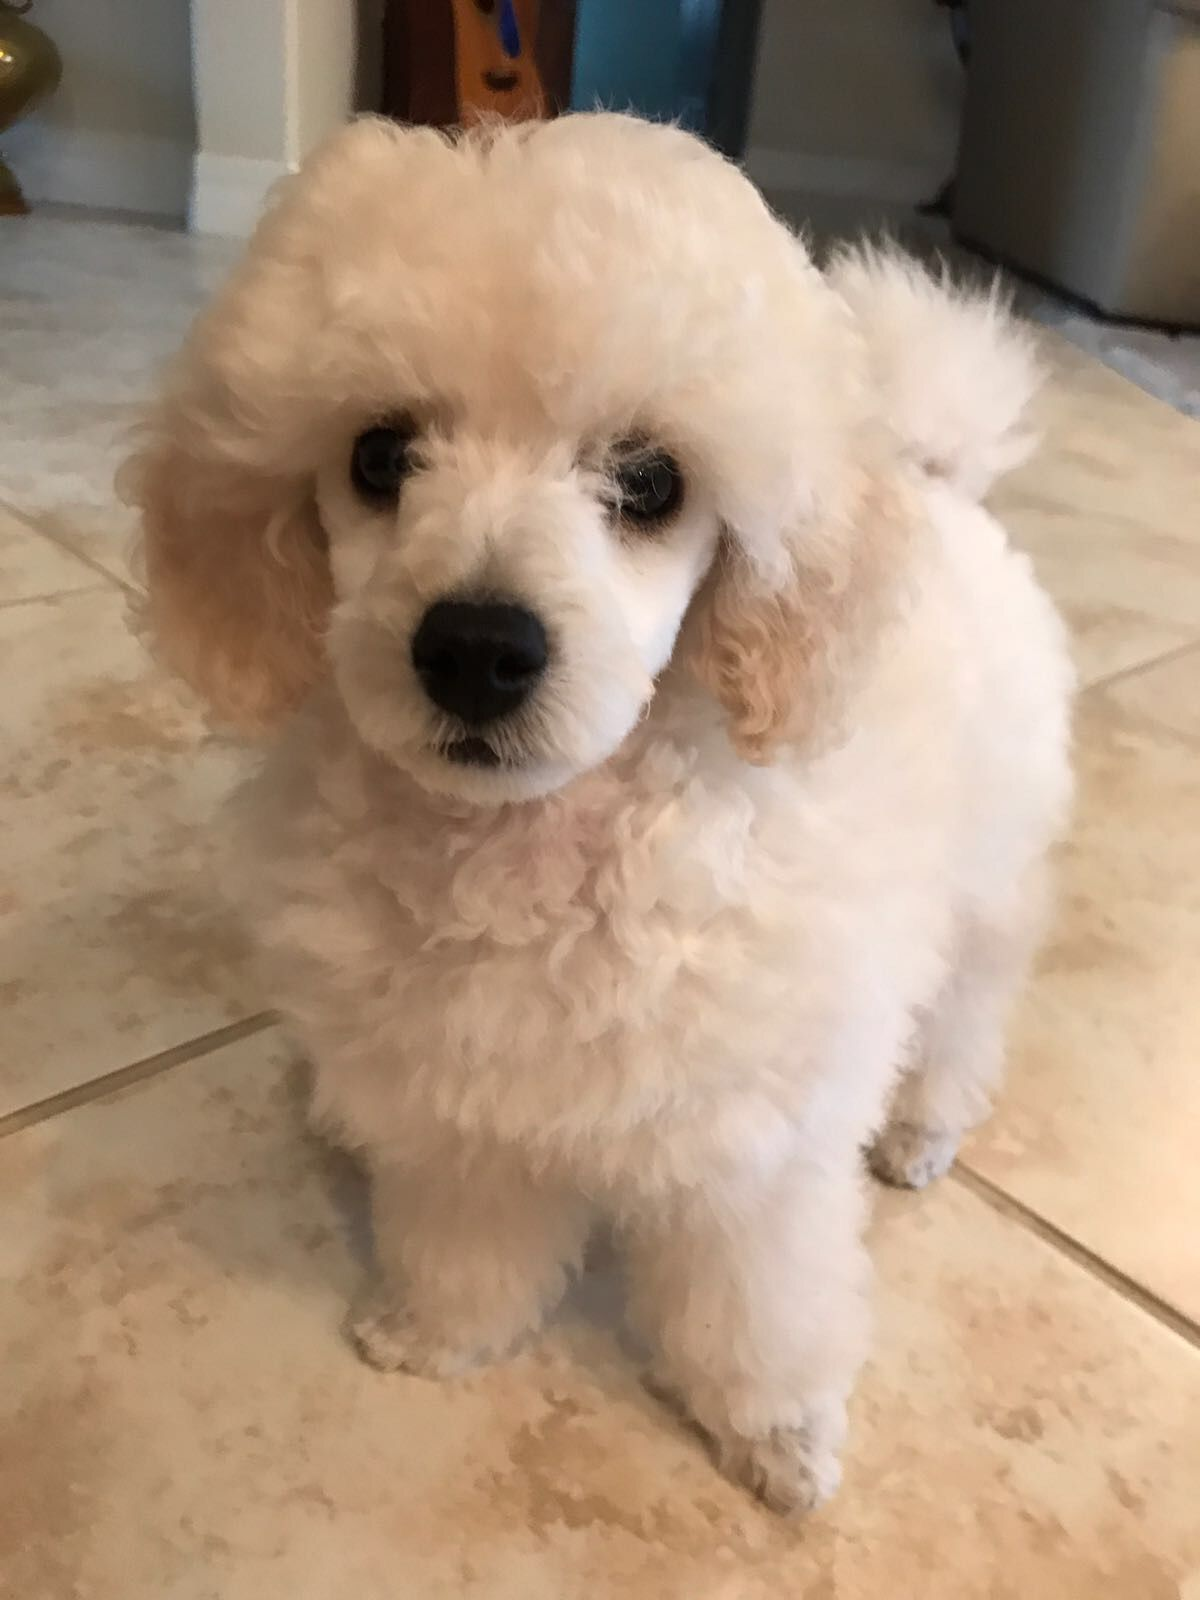 Beautiful Jolie first days home 4/22/17 Dog haircuts